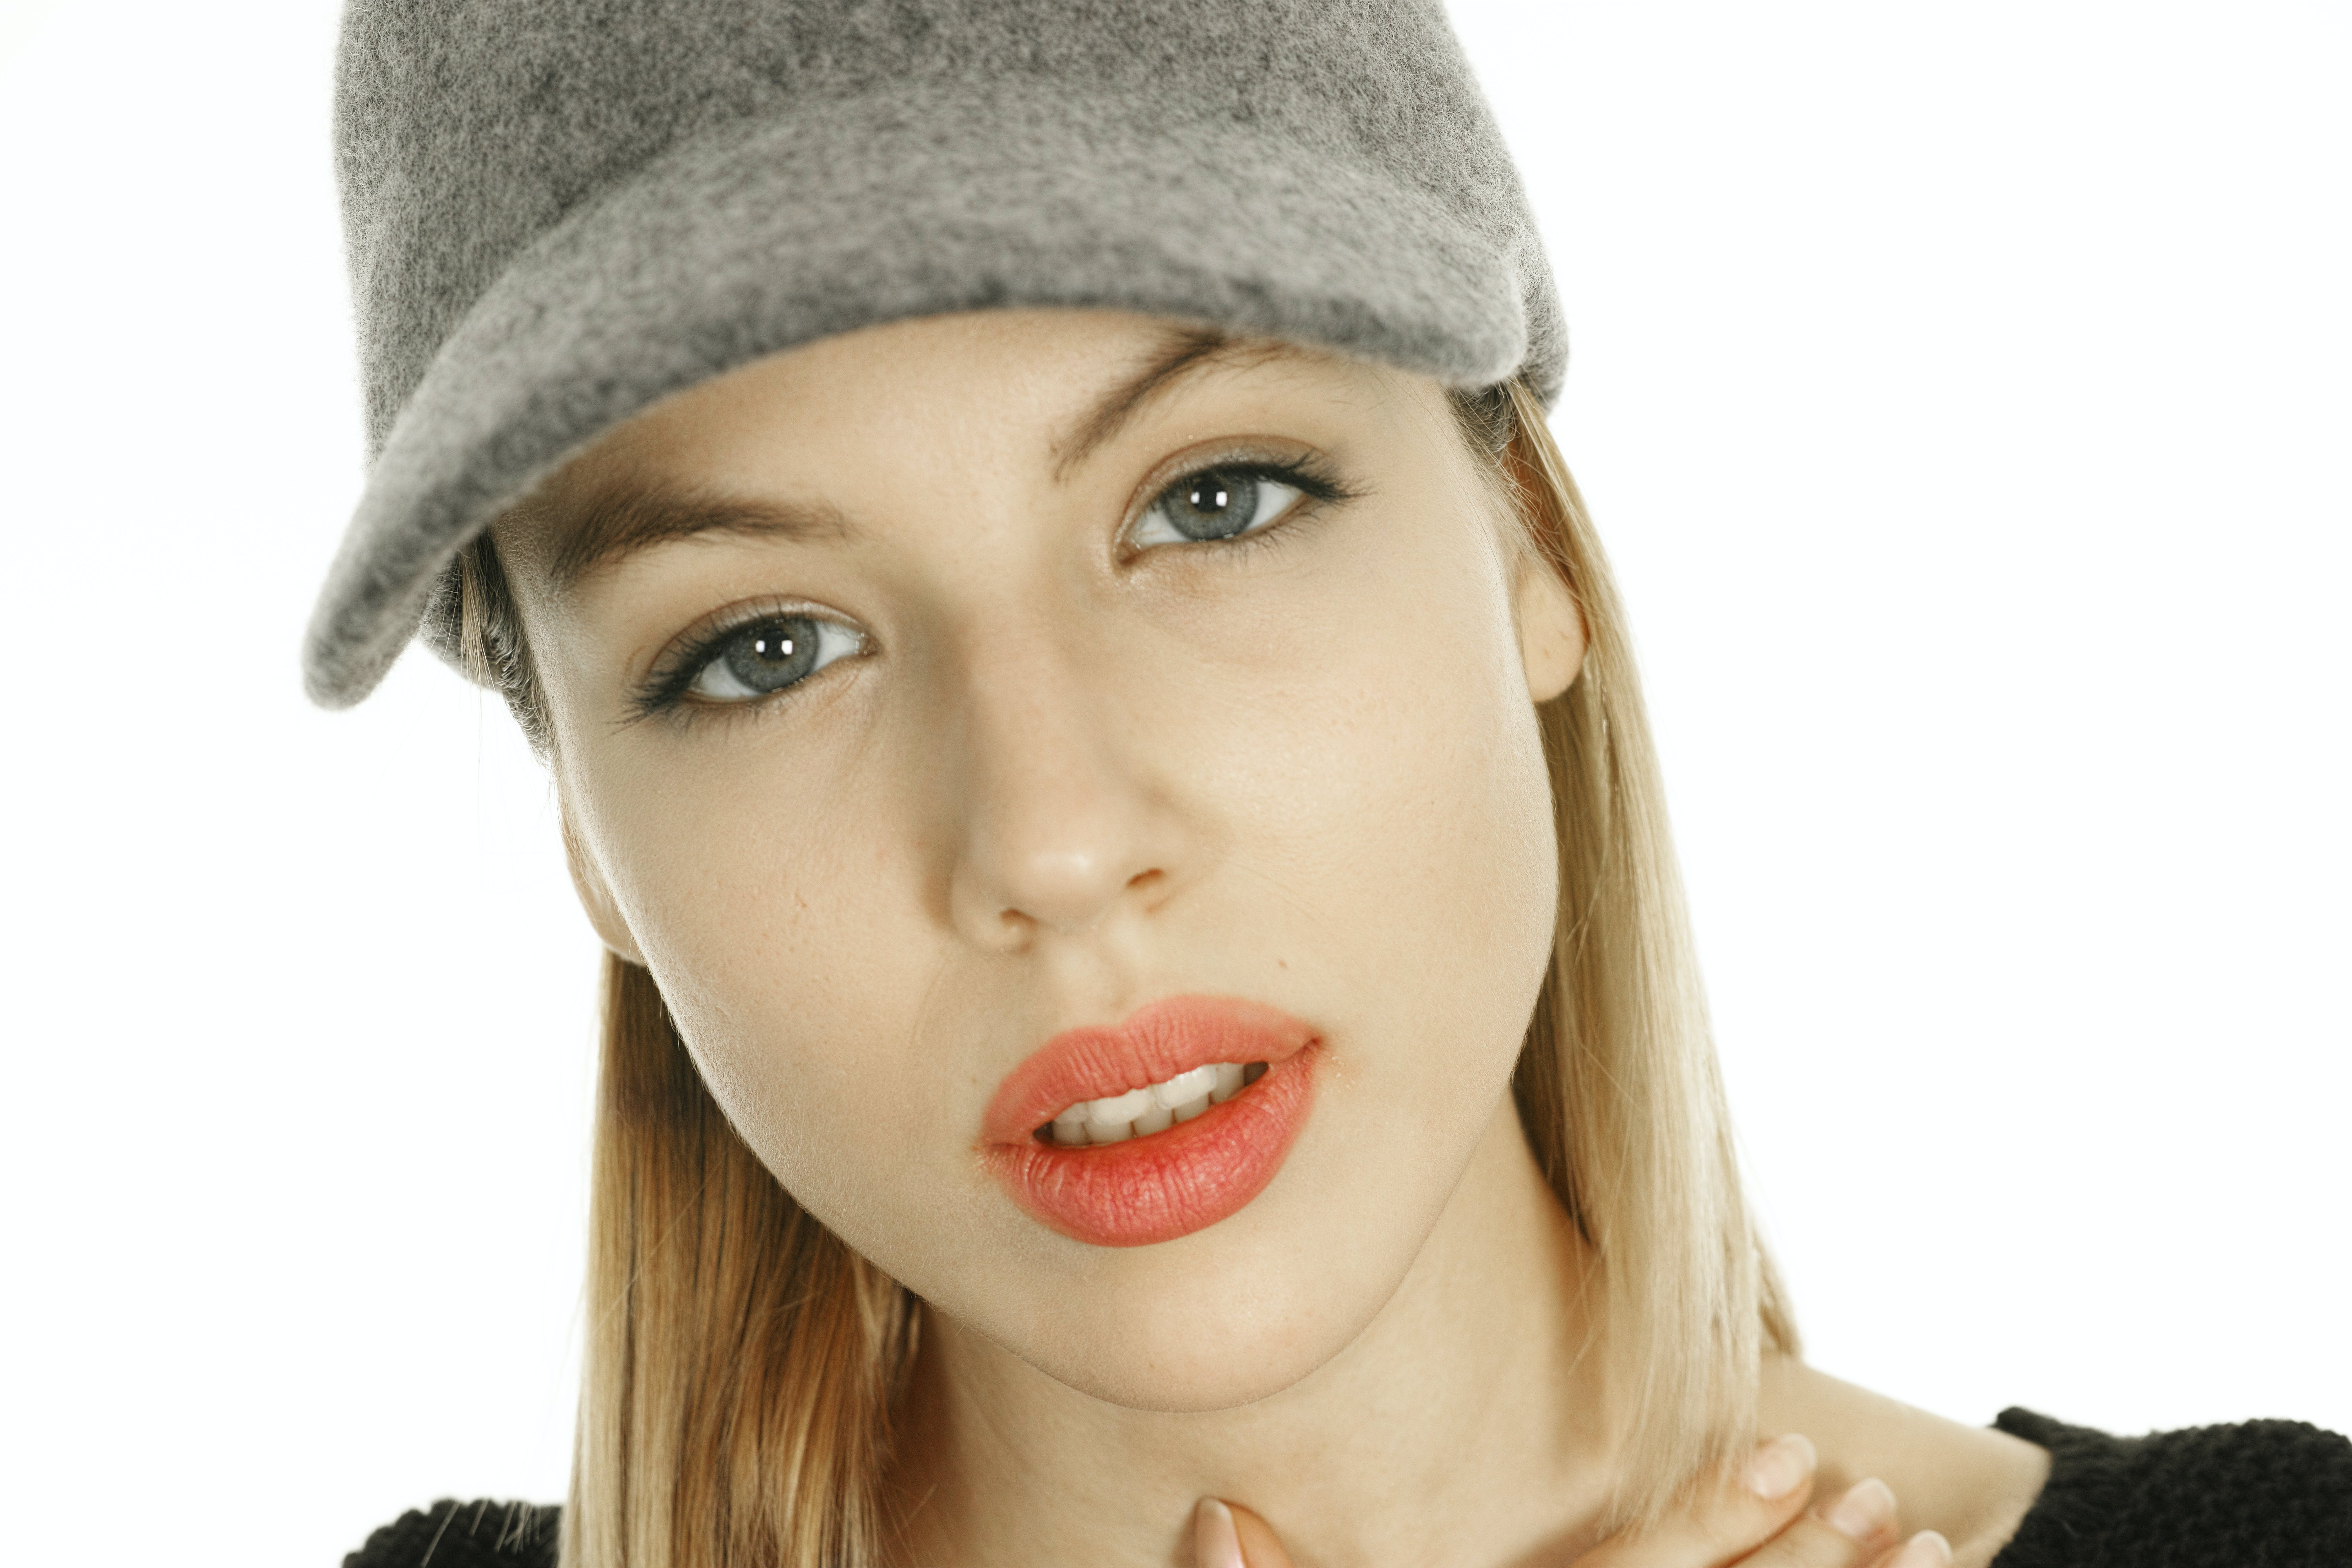 Woman in Gray Curved-brimmed Cap